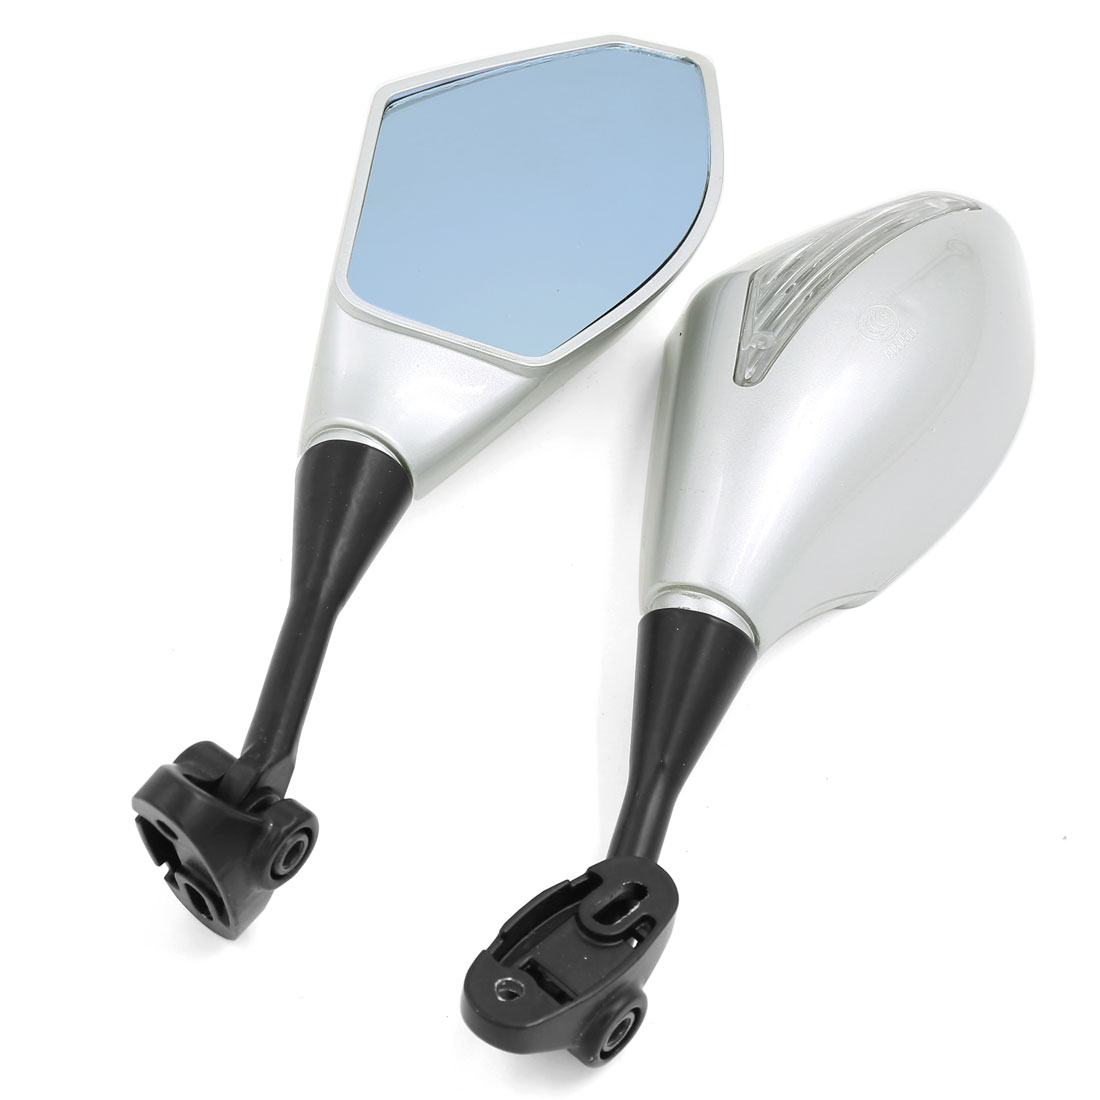 Pair Blue Glass Surface Adjustable Left Right Side Rearview Mirrors for Motorcycle Racing Car